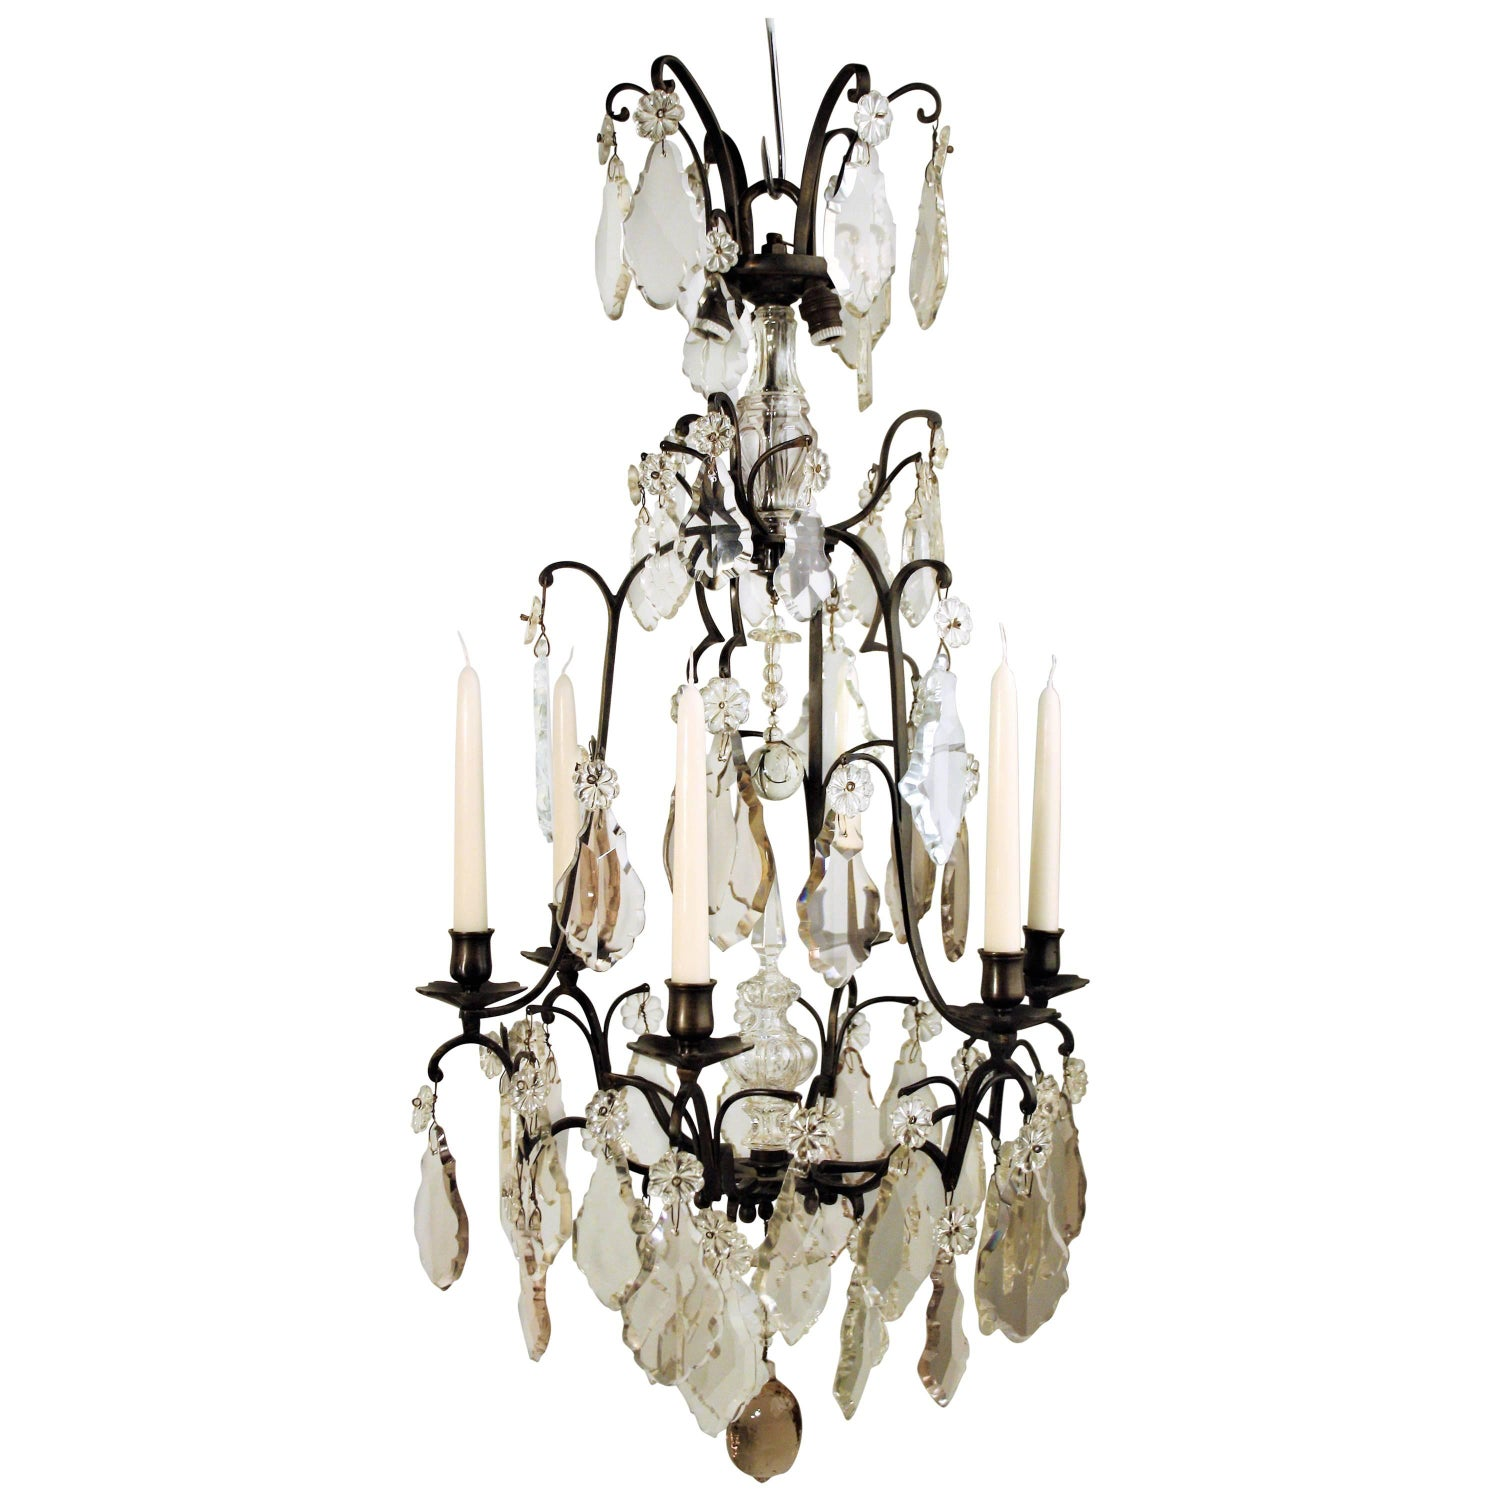 18th Century and Earlier Chandeliers and Pendants 222 For Sale